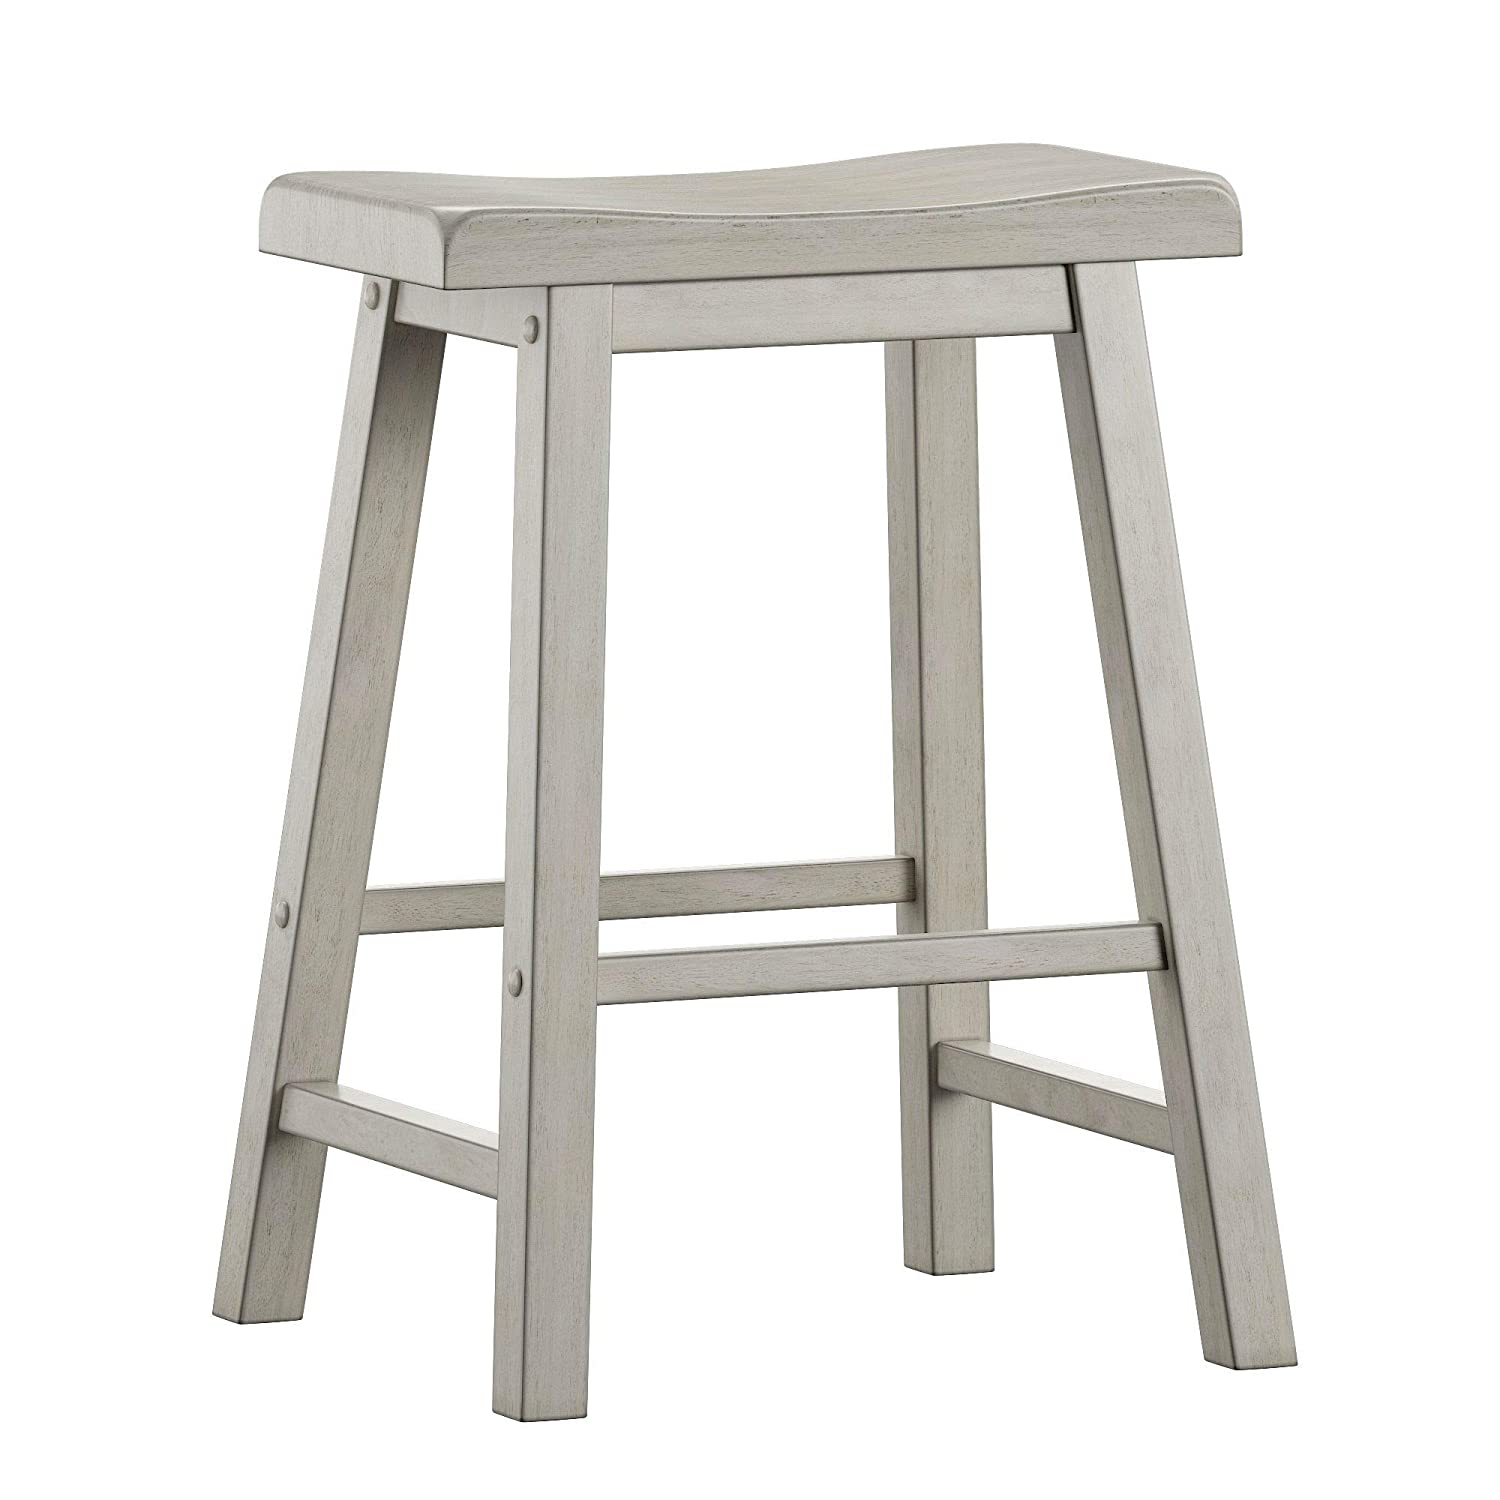 ModHaus Living Modern Transitional 24 inch Saddle Seat Backless Set of 2 Barstool - Includes Pen (White)